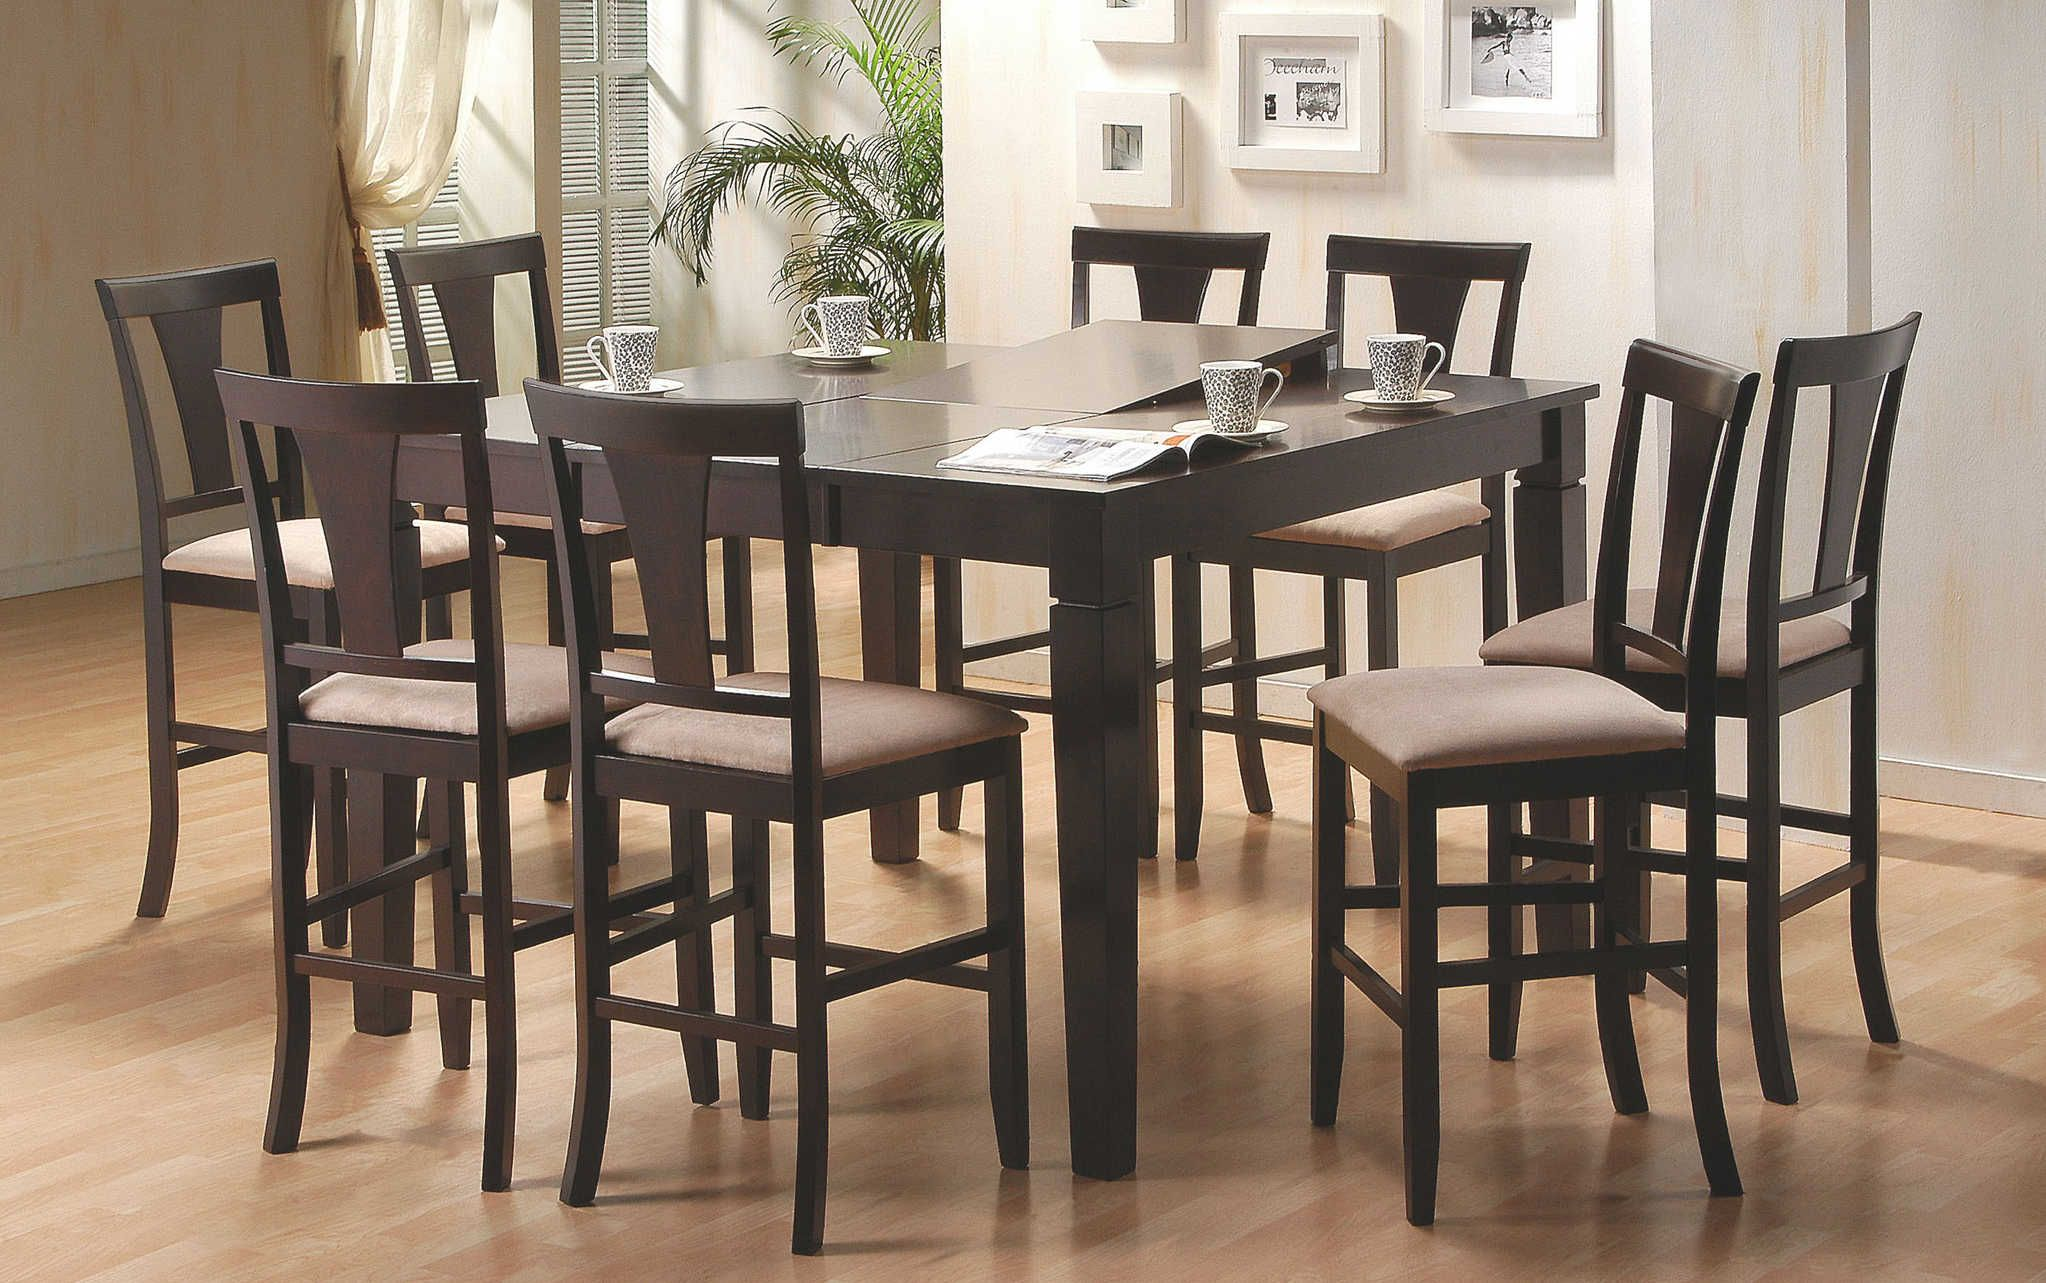 Dark Wood Tall Dining Table  Contemporary Gathering Table Dining Fascinating Espresso Dining Room Table Sets Design Inspiration